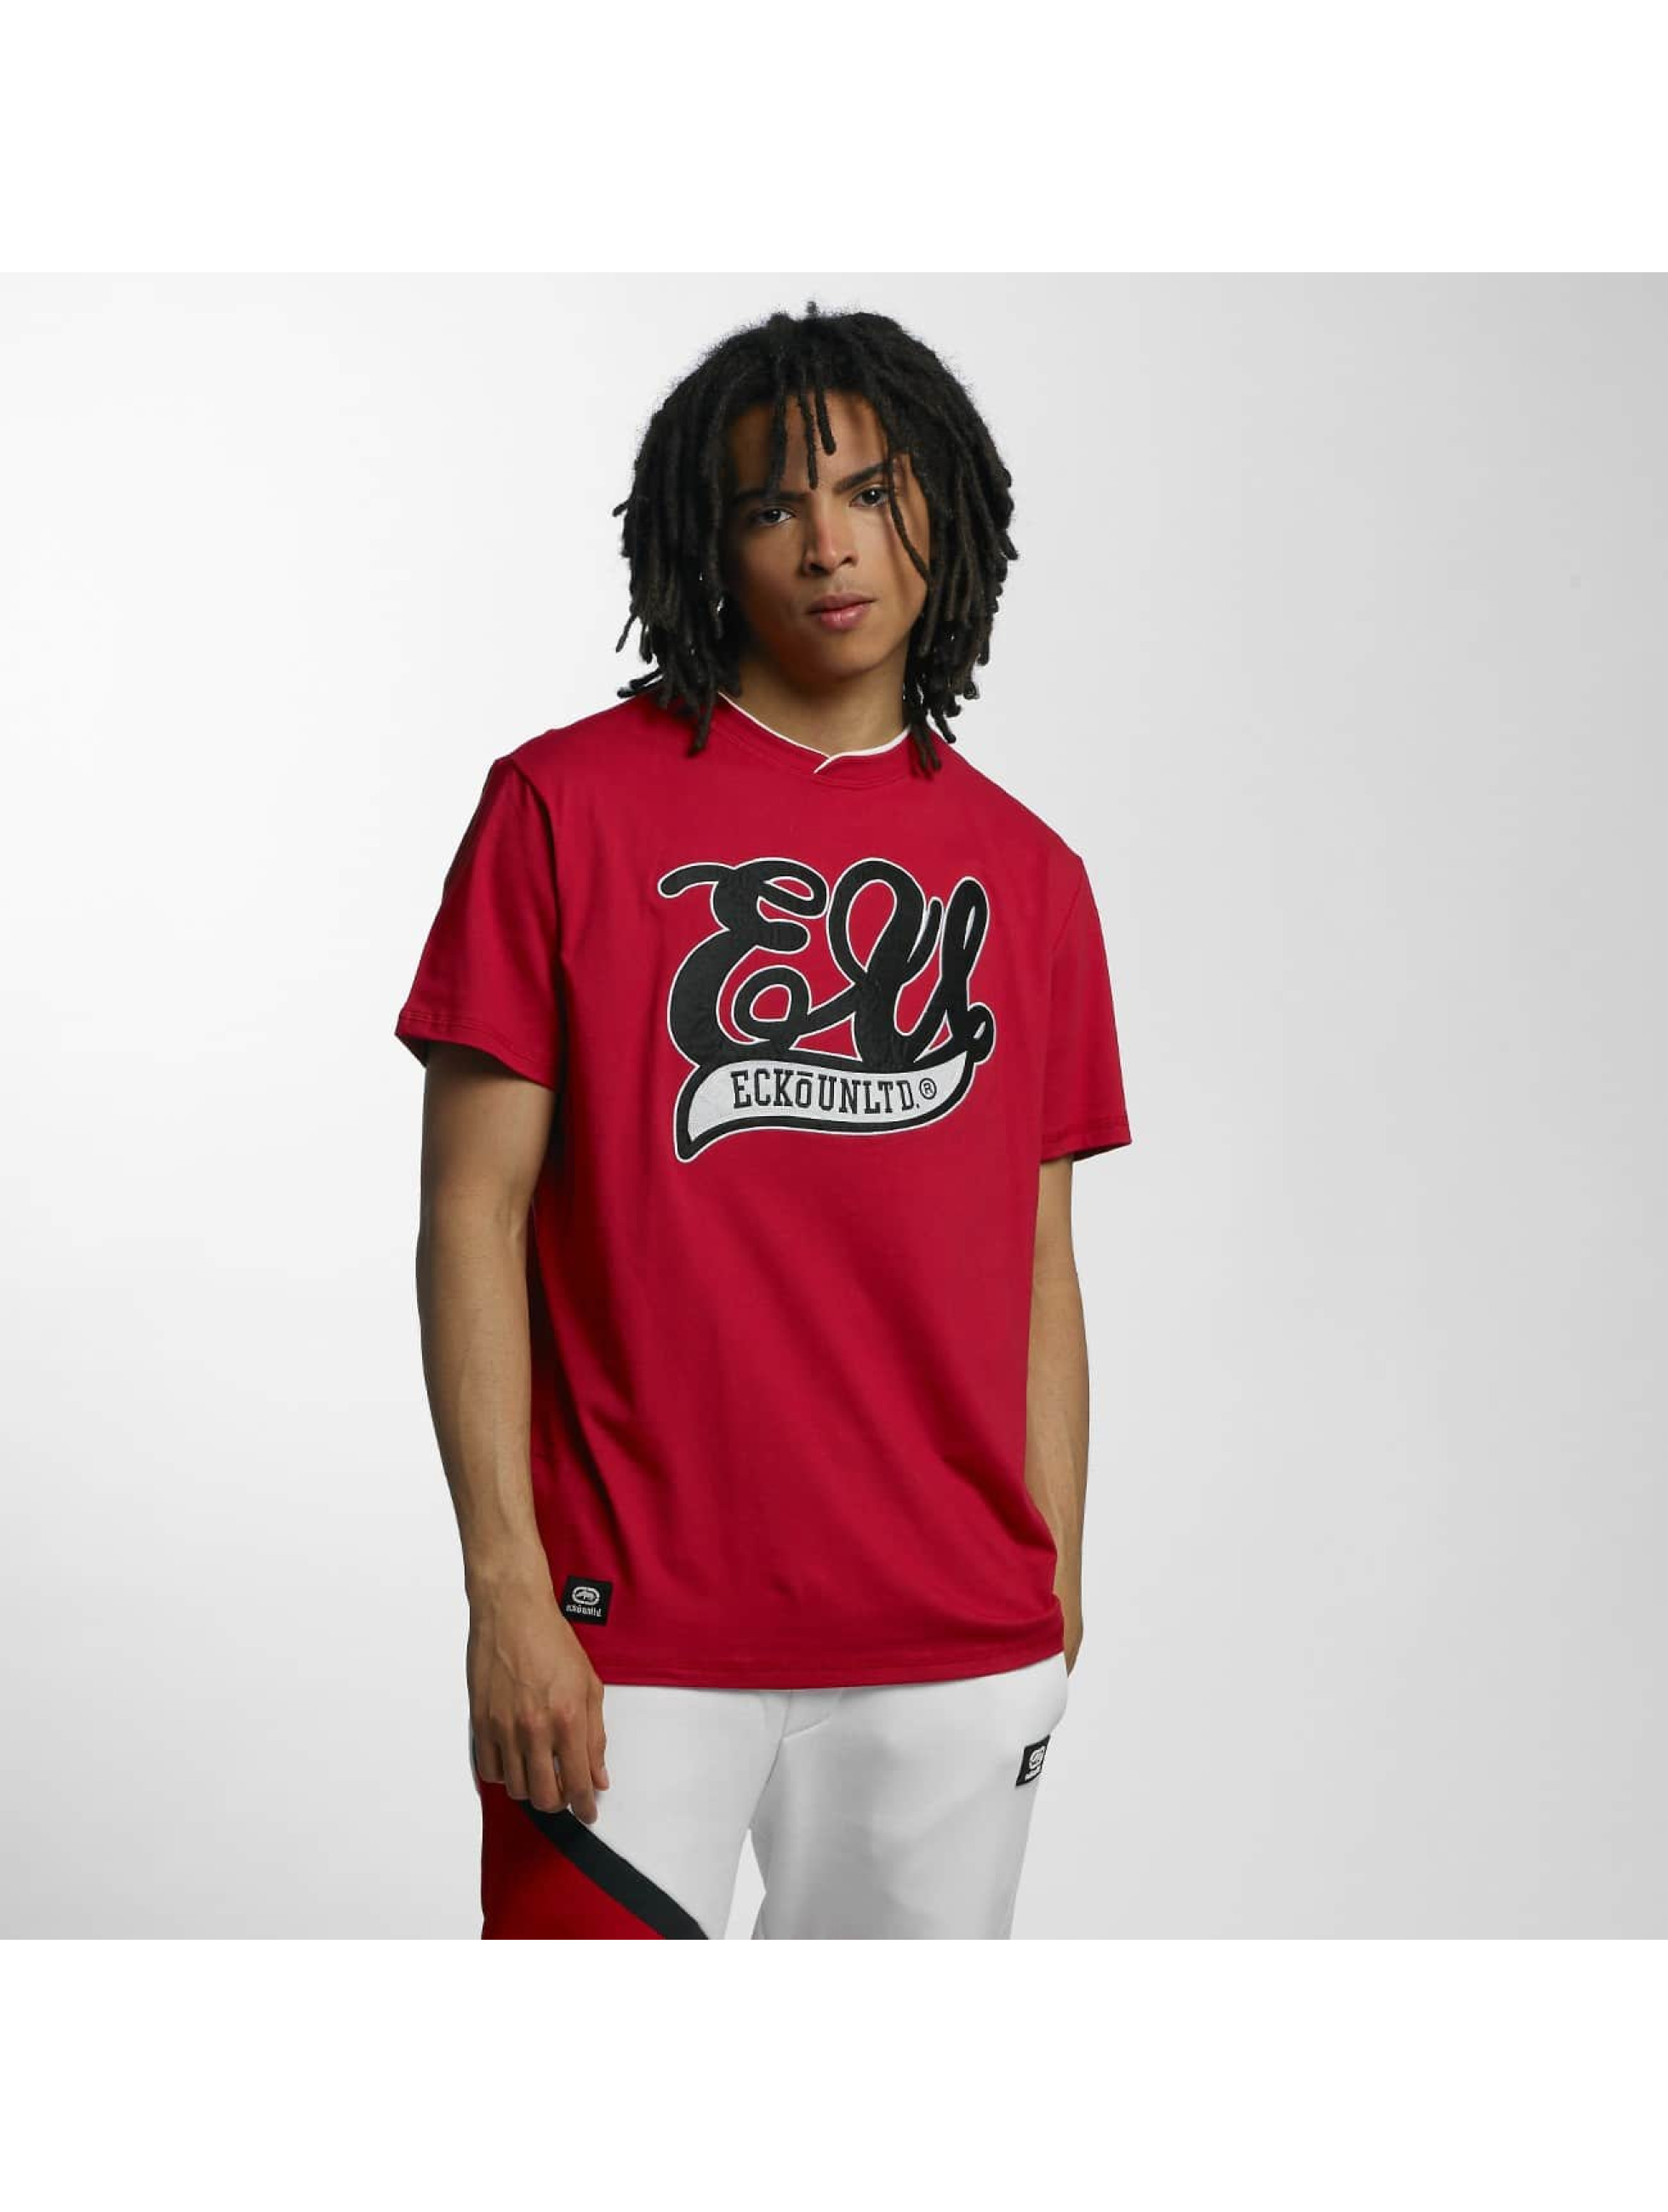 Ecko Unltd. / T-Shirt With Patch in red M